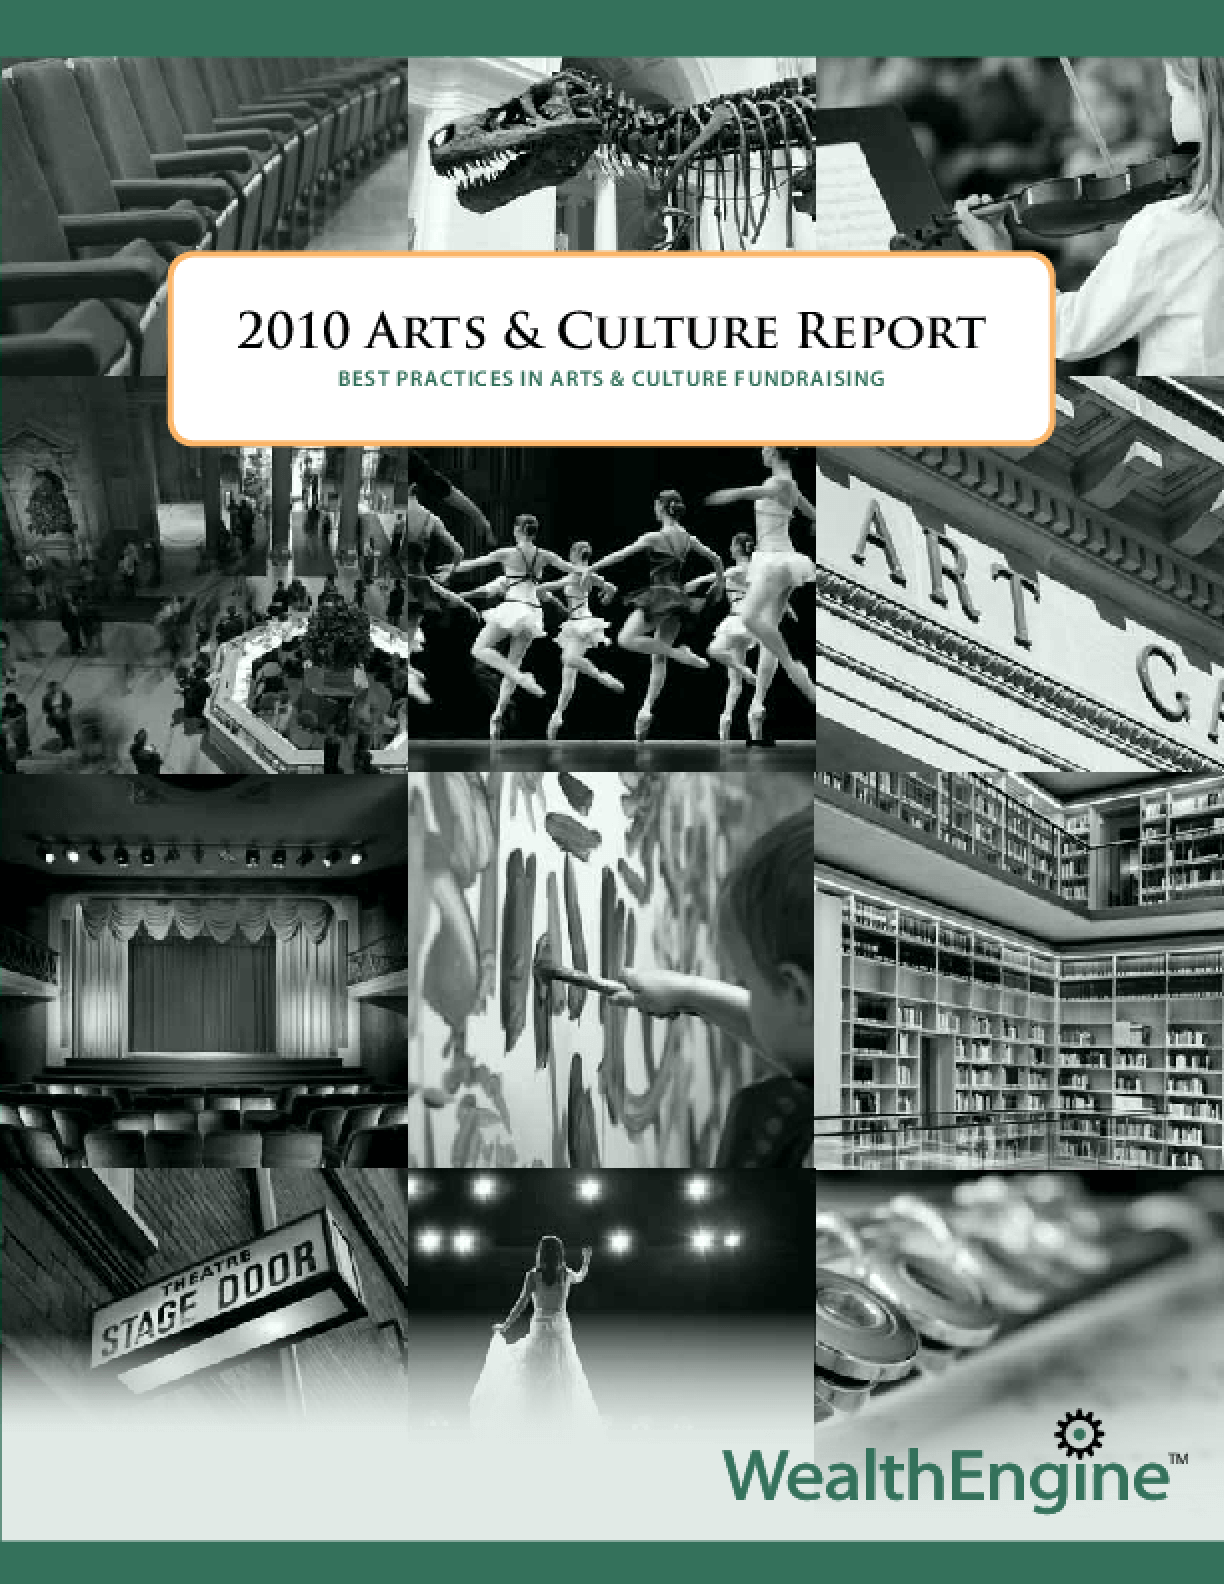 2010 Arts & Culture Report: Best Practices in Arts & Culture Fundraising